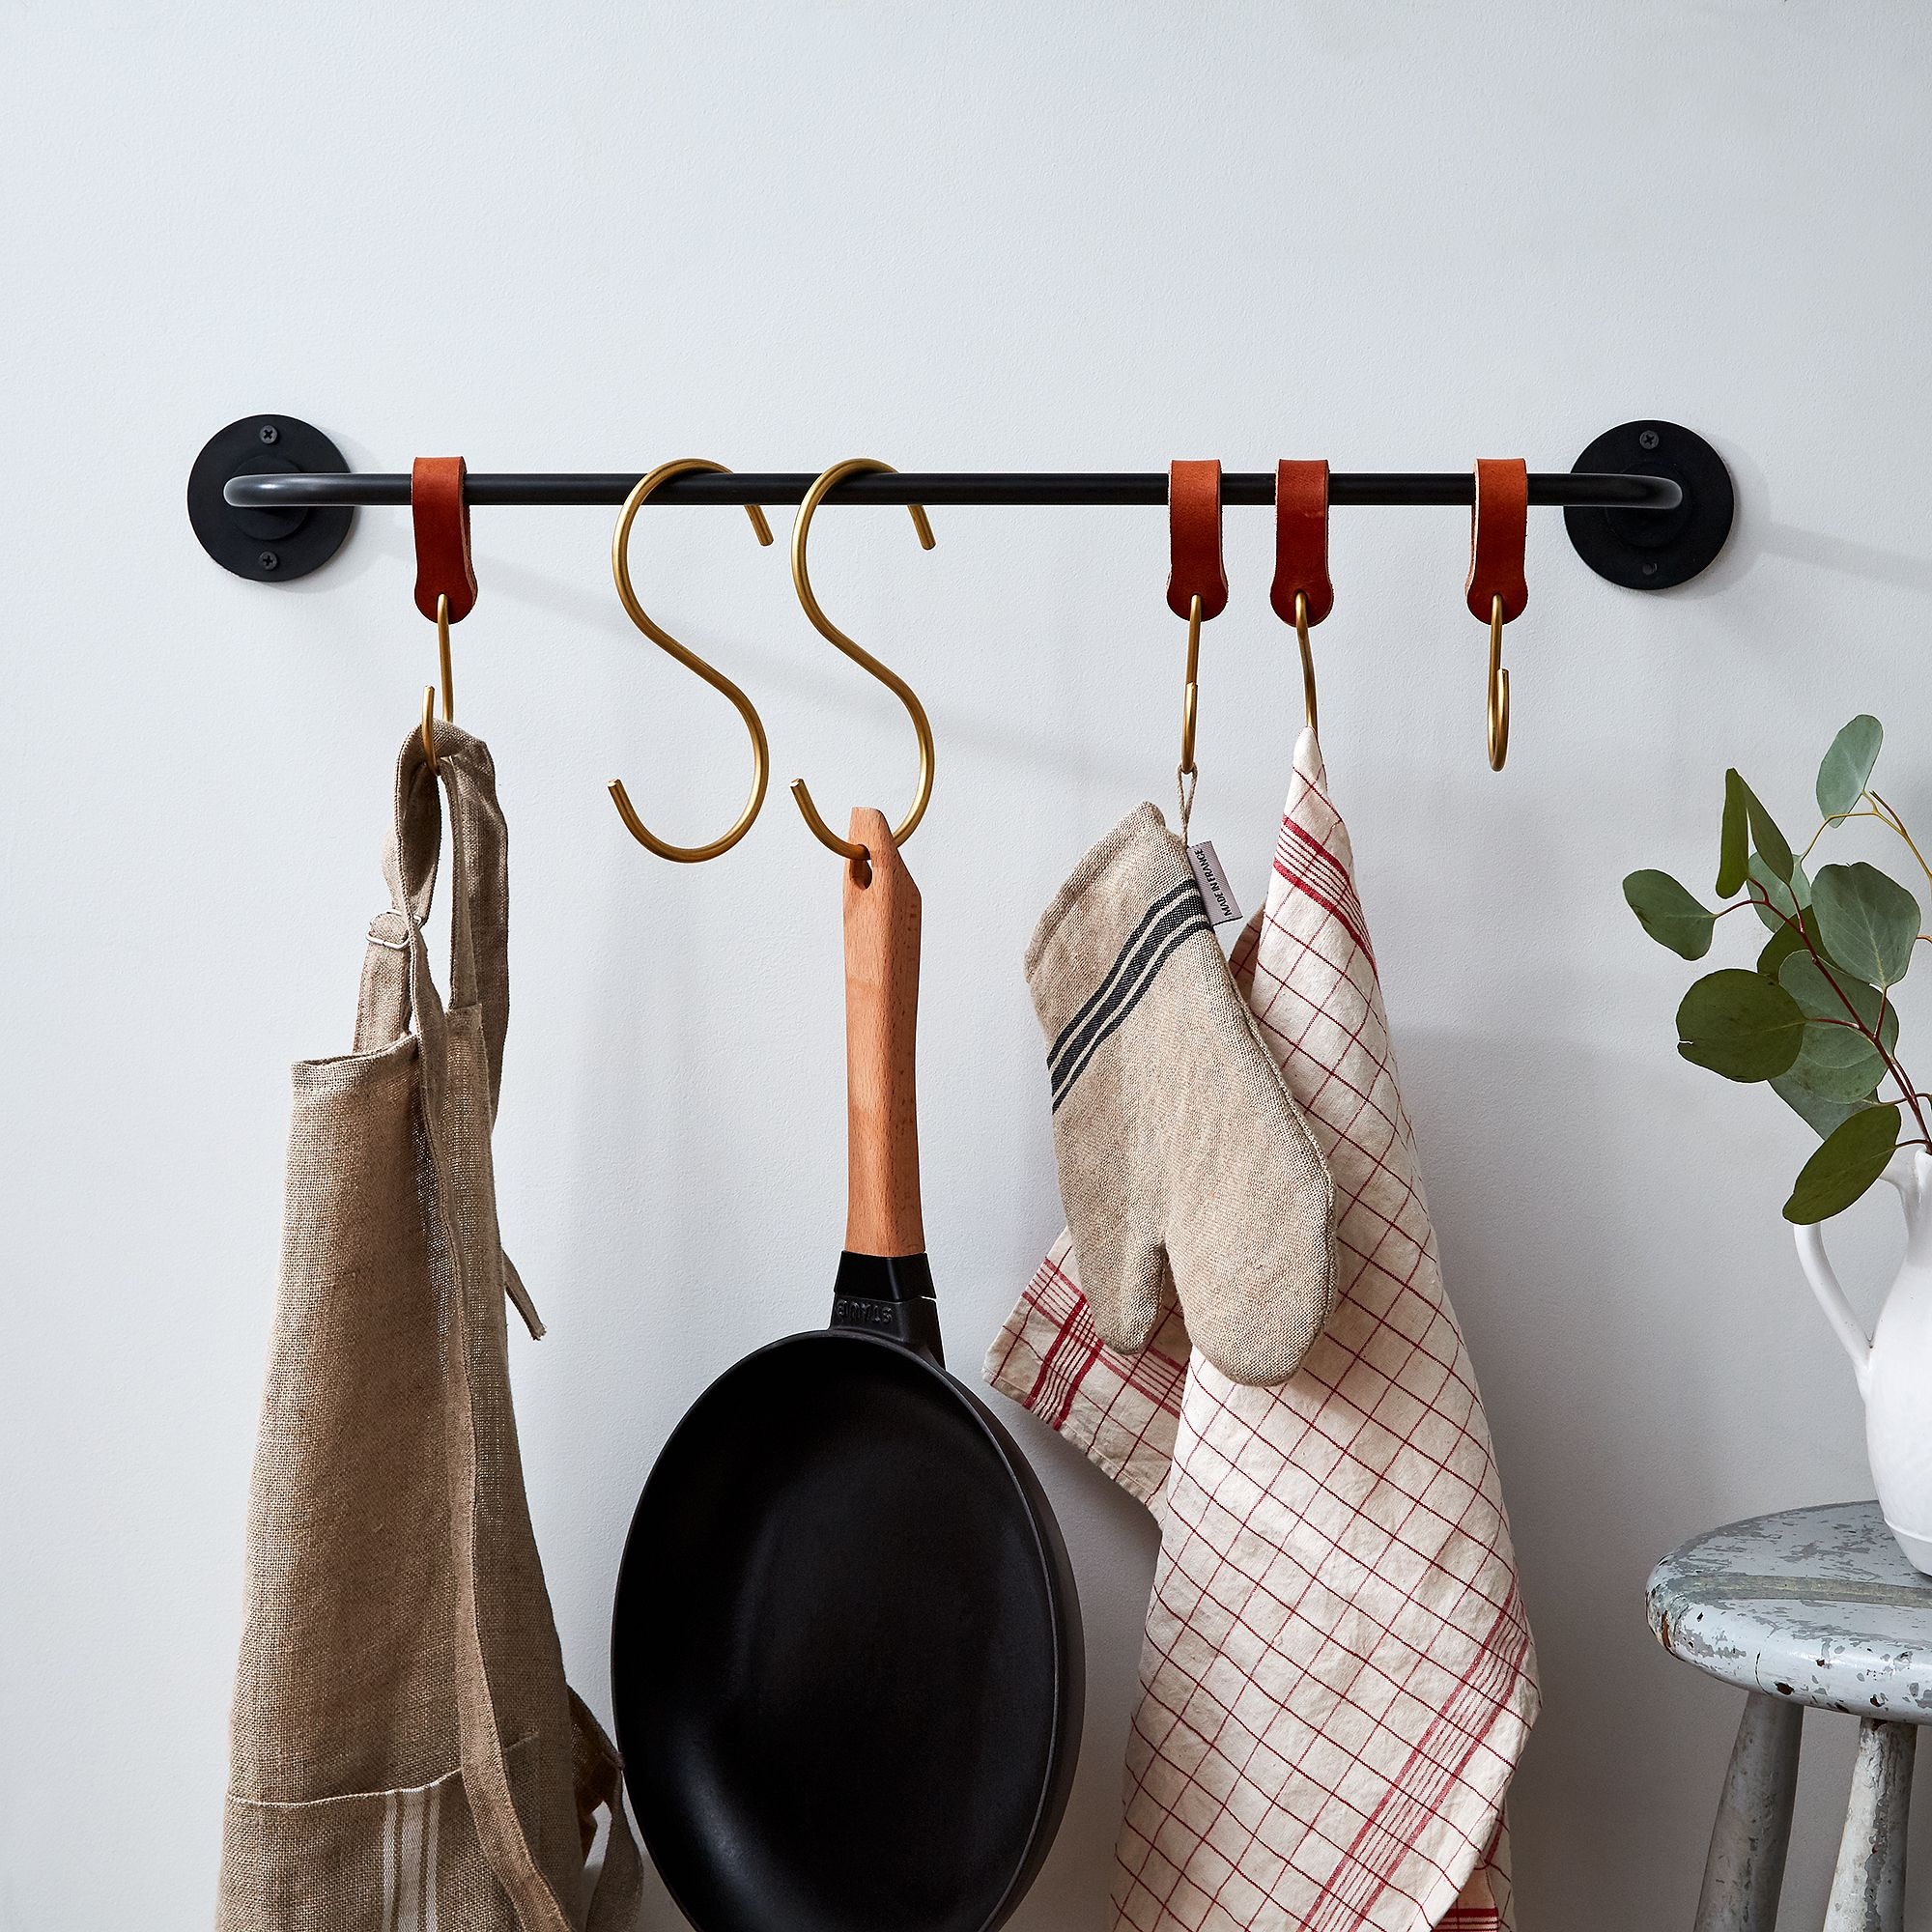 of kitchen ideas saucepan small size hanging with storage full bar creative rack pot ceiling pan holders